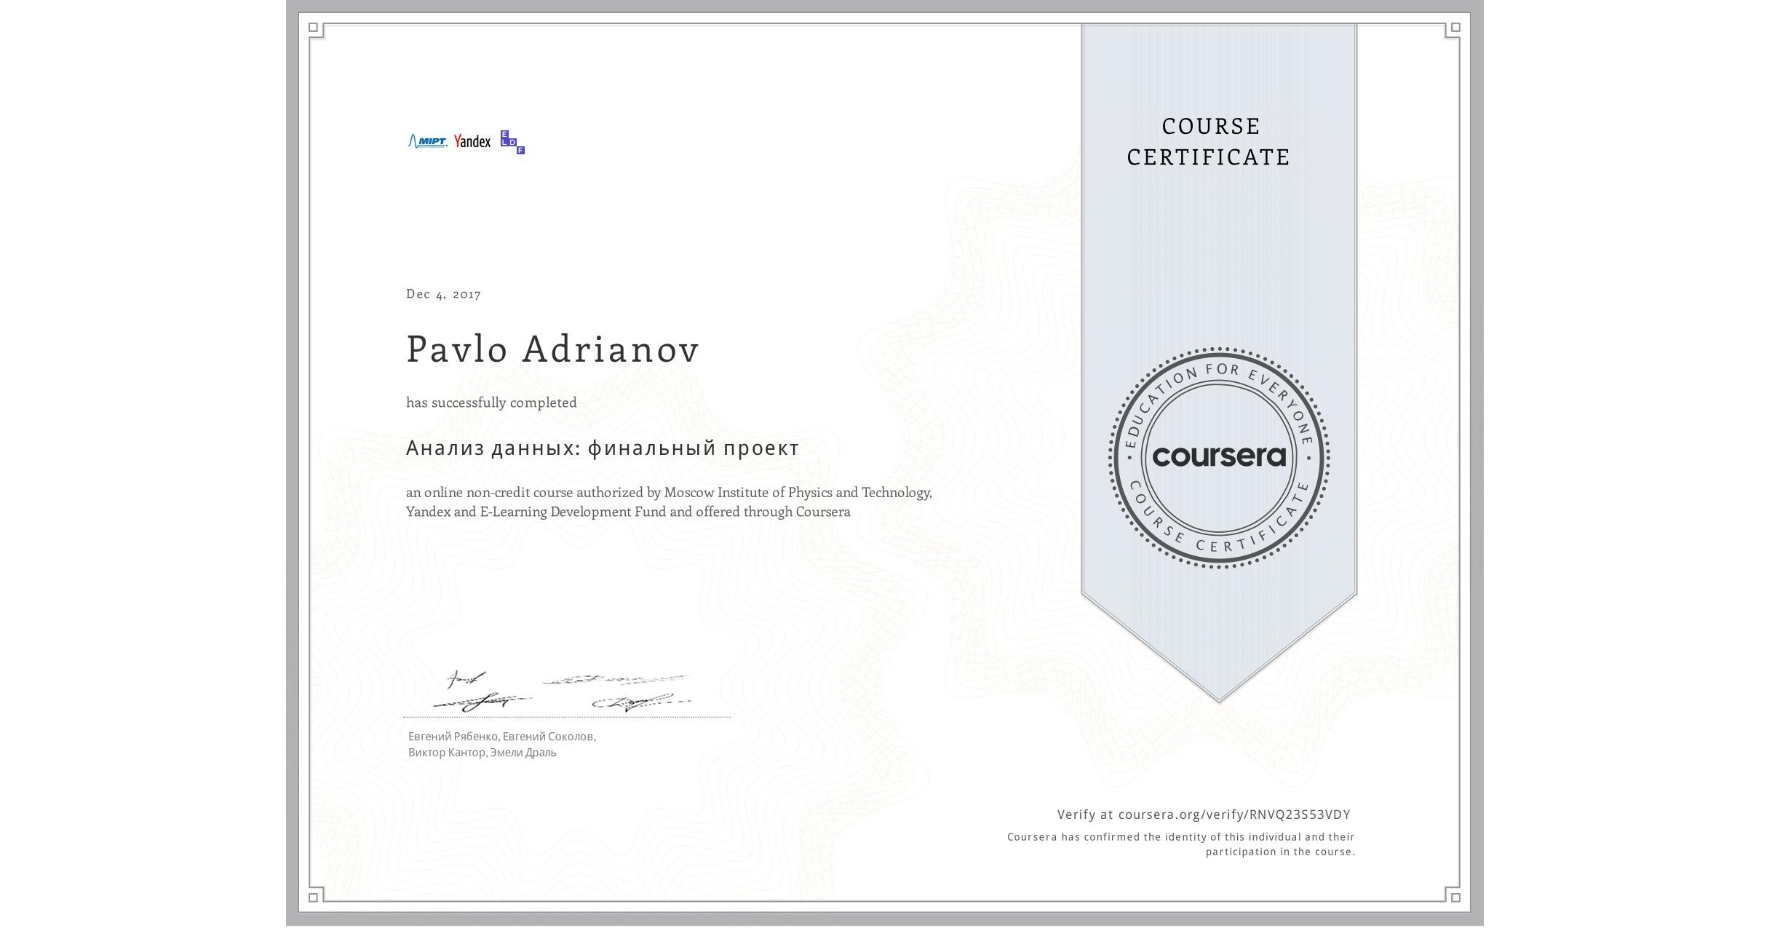 View certificate for Pavlo Adrianov, Анализ данных: финальный проект, an online non-credit course authorized by Moscow Institute of Physics and Technology, Yandex & E-Learning Development Fund and offered through Coursera